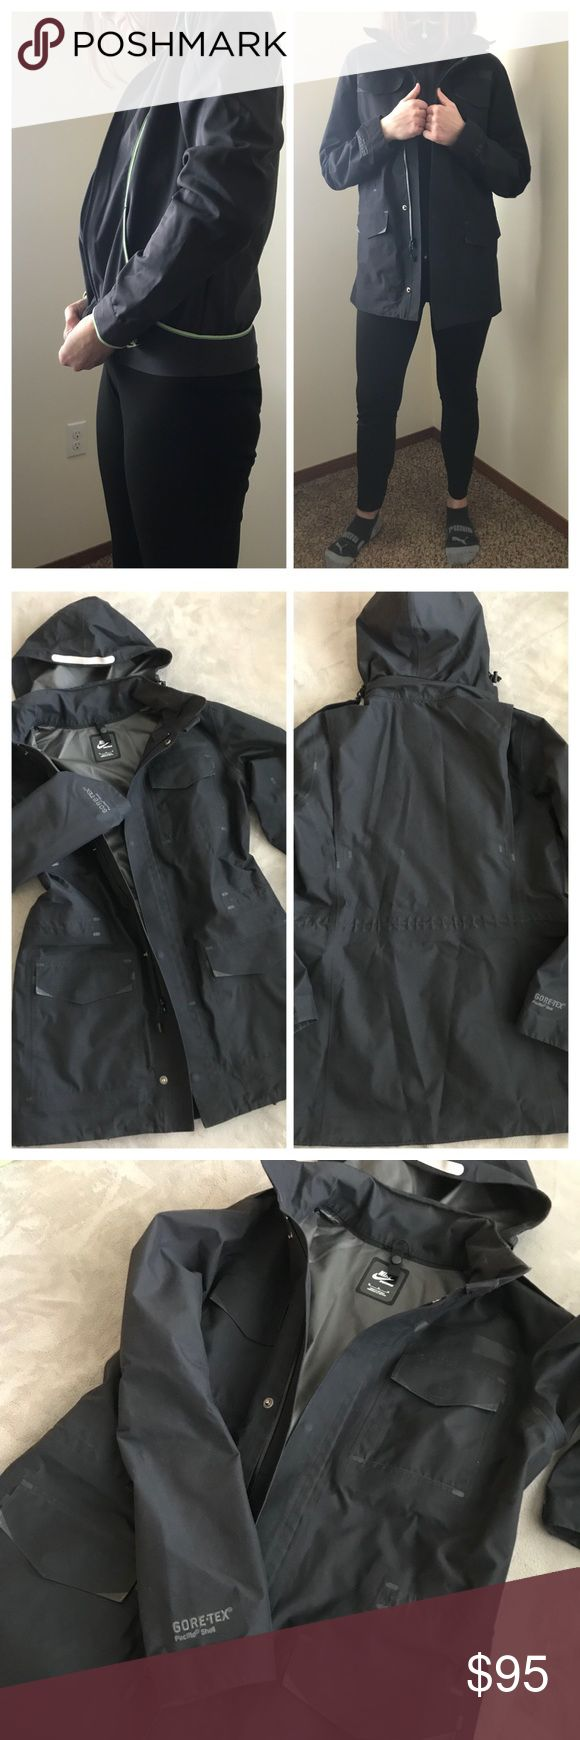 Nike NSW Trench/rain jacket Excellent condition, all black sophisticated GORE-TEX shell by Nike. Has all the right pockets and adjustable fobs to hug your waistline or keep it body and sporty. Hood can also be stowed away. The smaller Nike jacket will be included as a liner but it doesn't zip in, (I'm keeping that one) but this one is also in excellent condition and size Medium, like a light running jacket. Nike Jackets & Coats